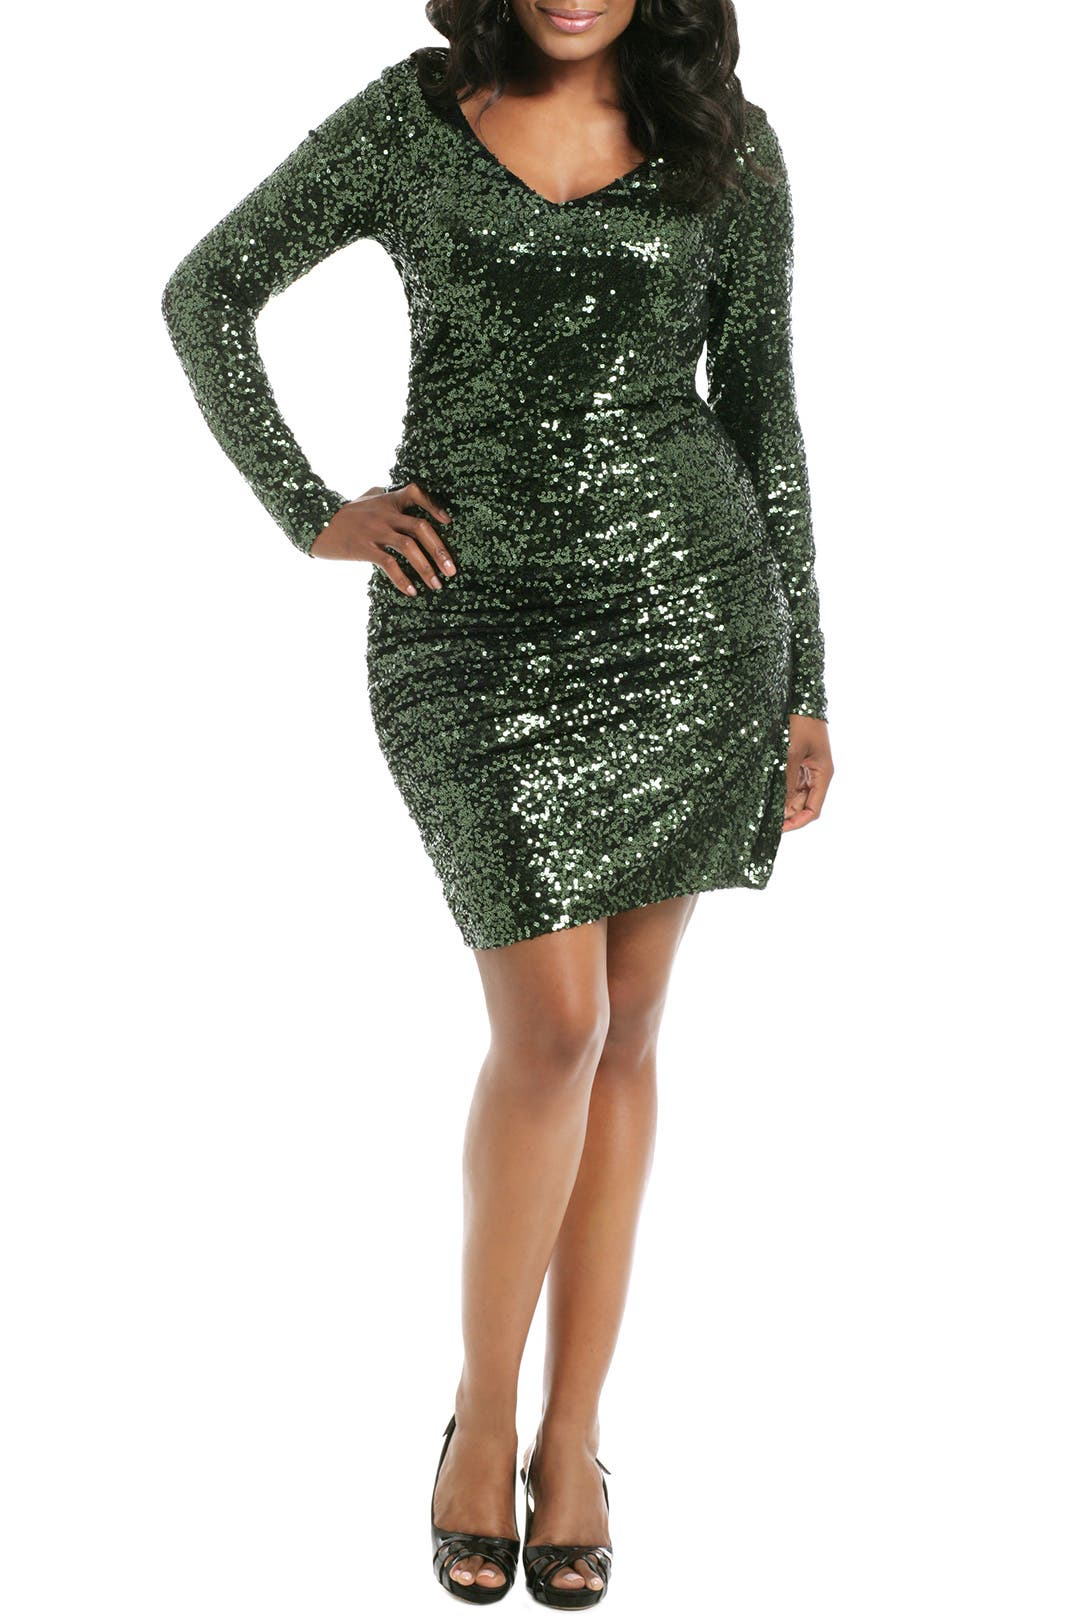 Get Lucky Dress by Badgley Mischka